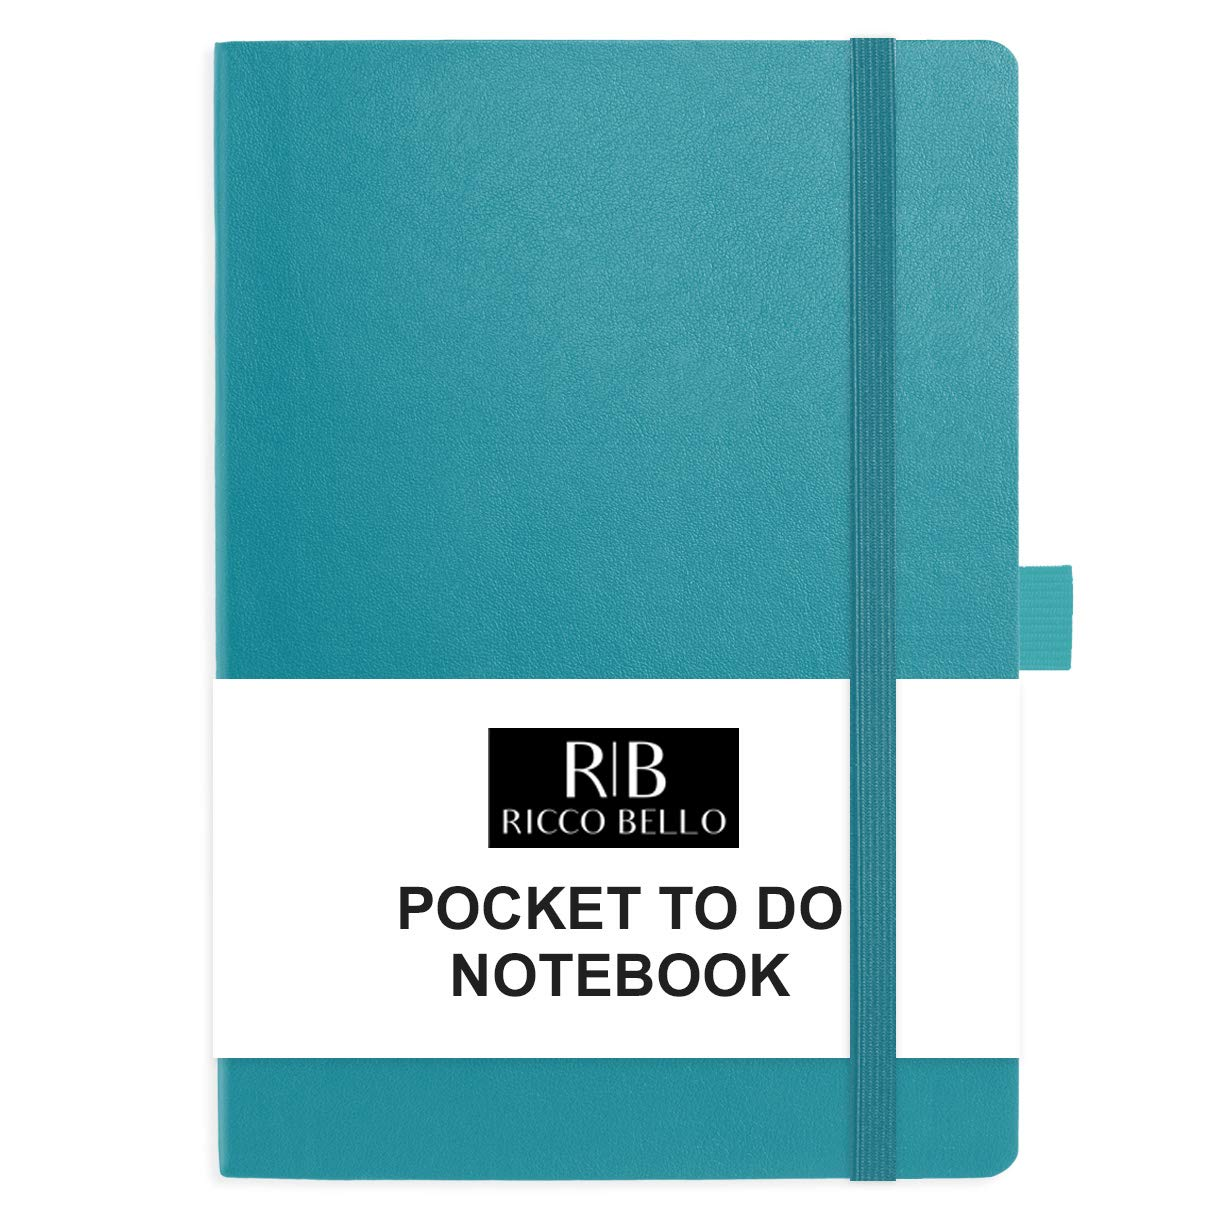 RICCO BELLO Small Hardcover Pocket to Do List Notebook, Elastic Band Closure, Pen Loop, Ribbon Bookmark, Storage Pocket, Vegan Leather 4.25 x 6 inches (Teal)